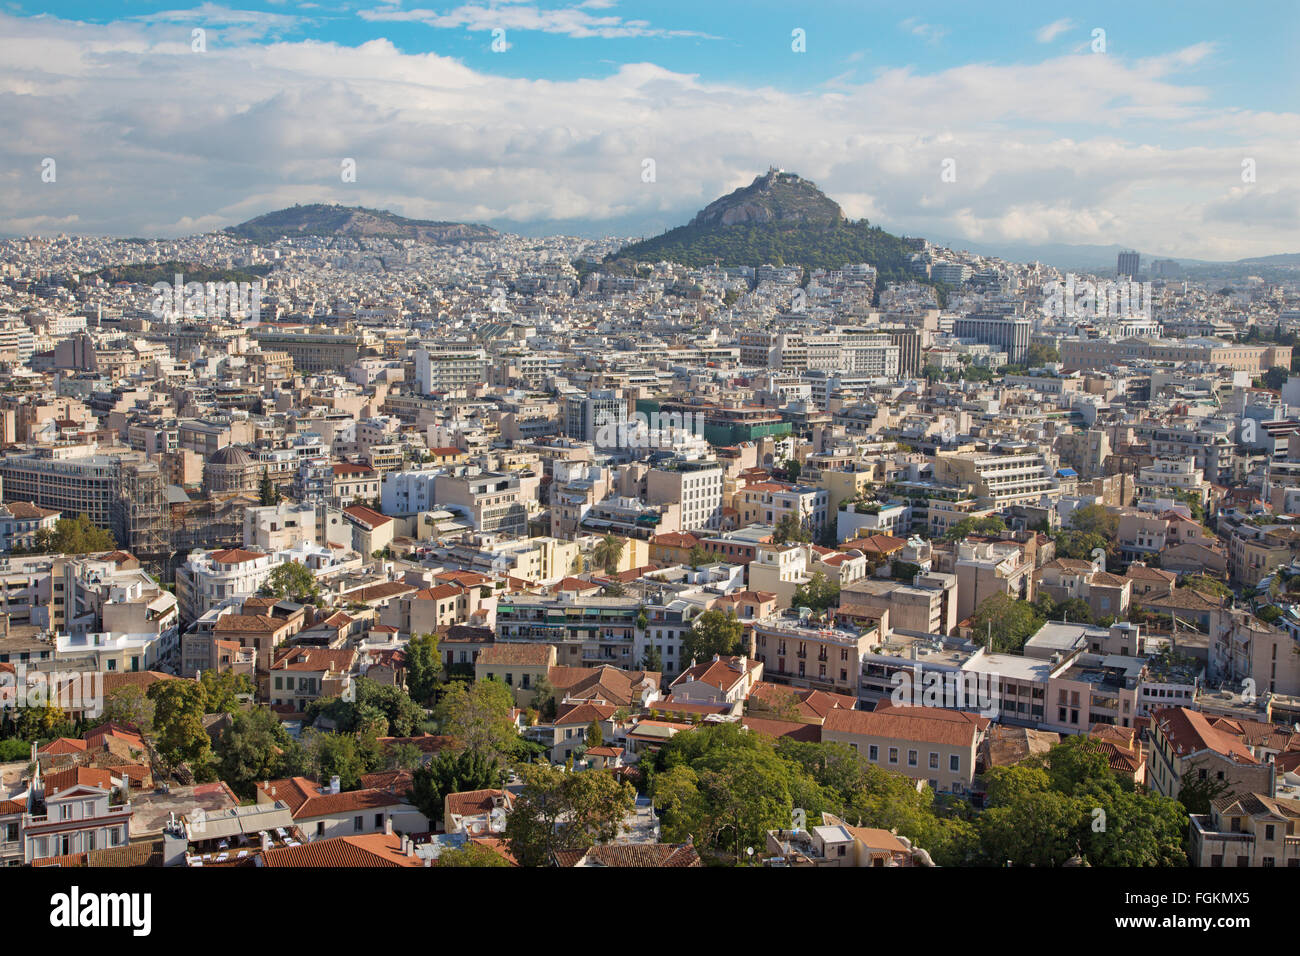 ATHENS, GREECE - OCTOBER 8, 2015: The look from Acropolis to Likavittos hill and the town. - Stock Image